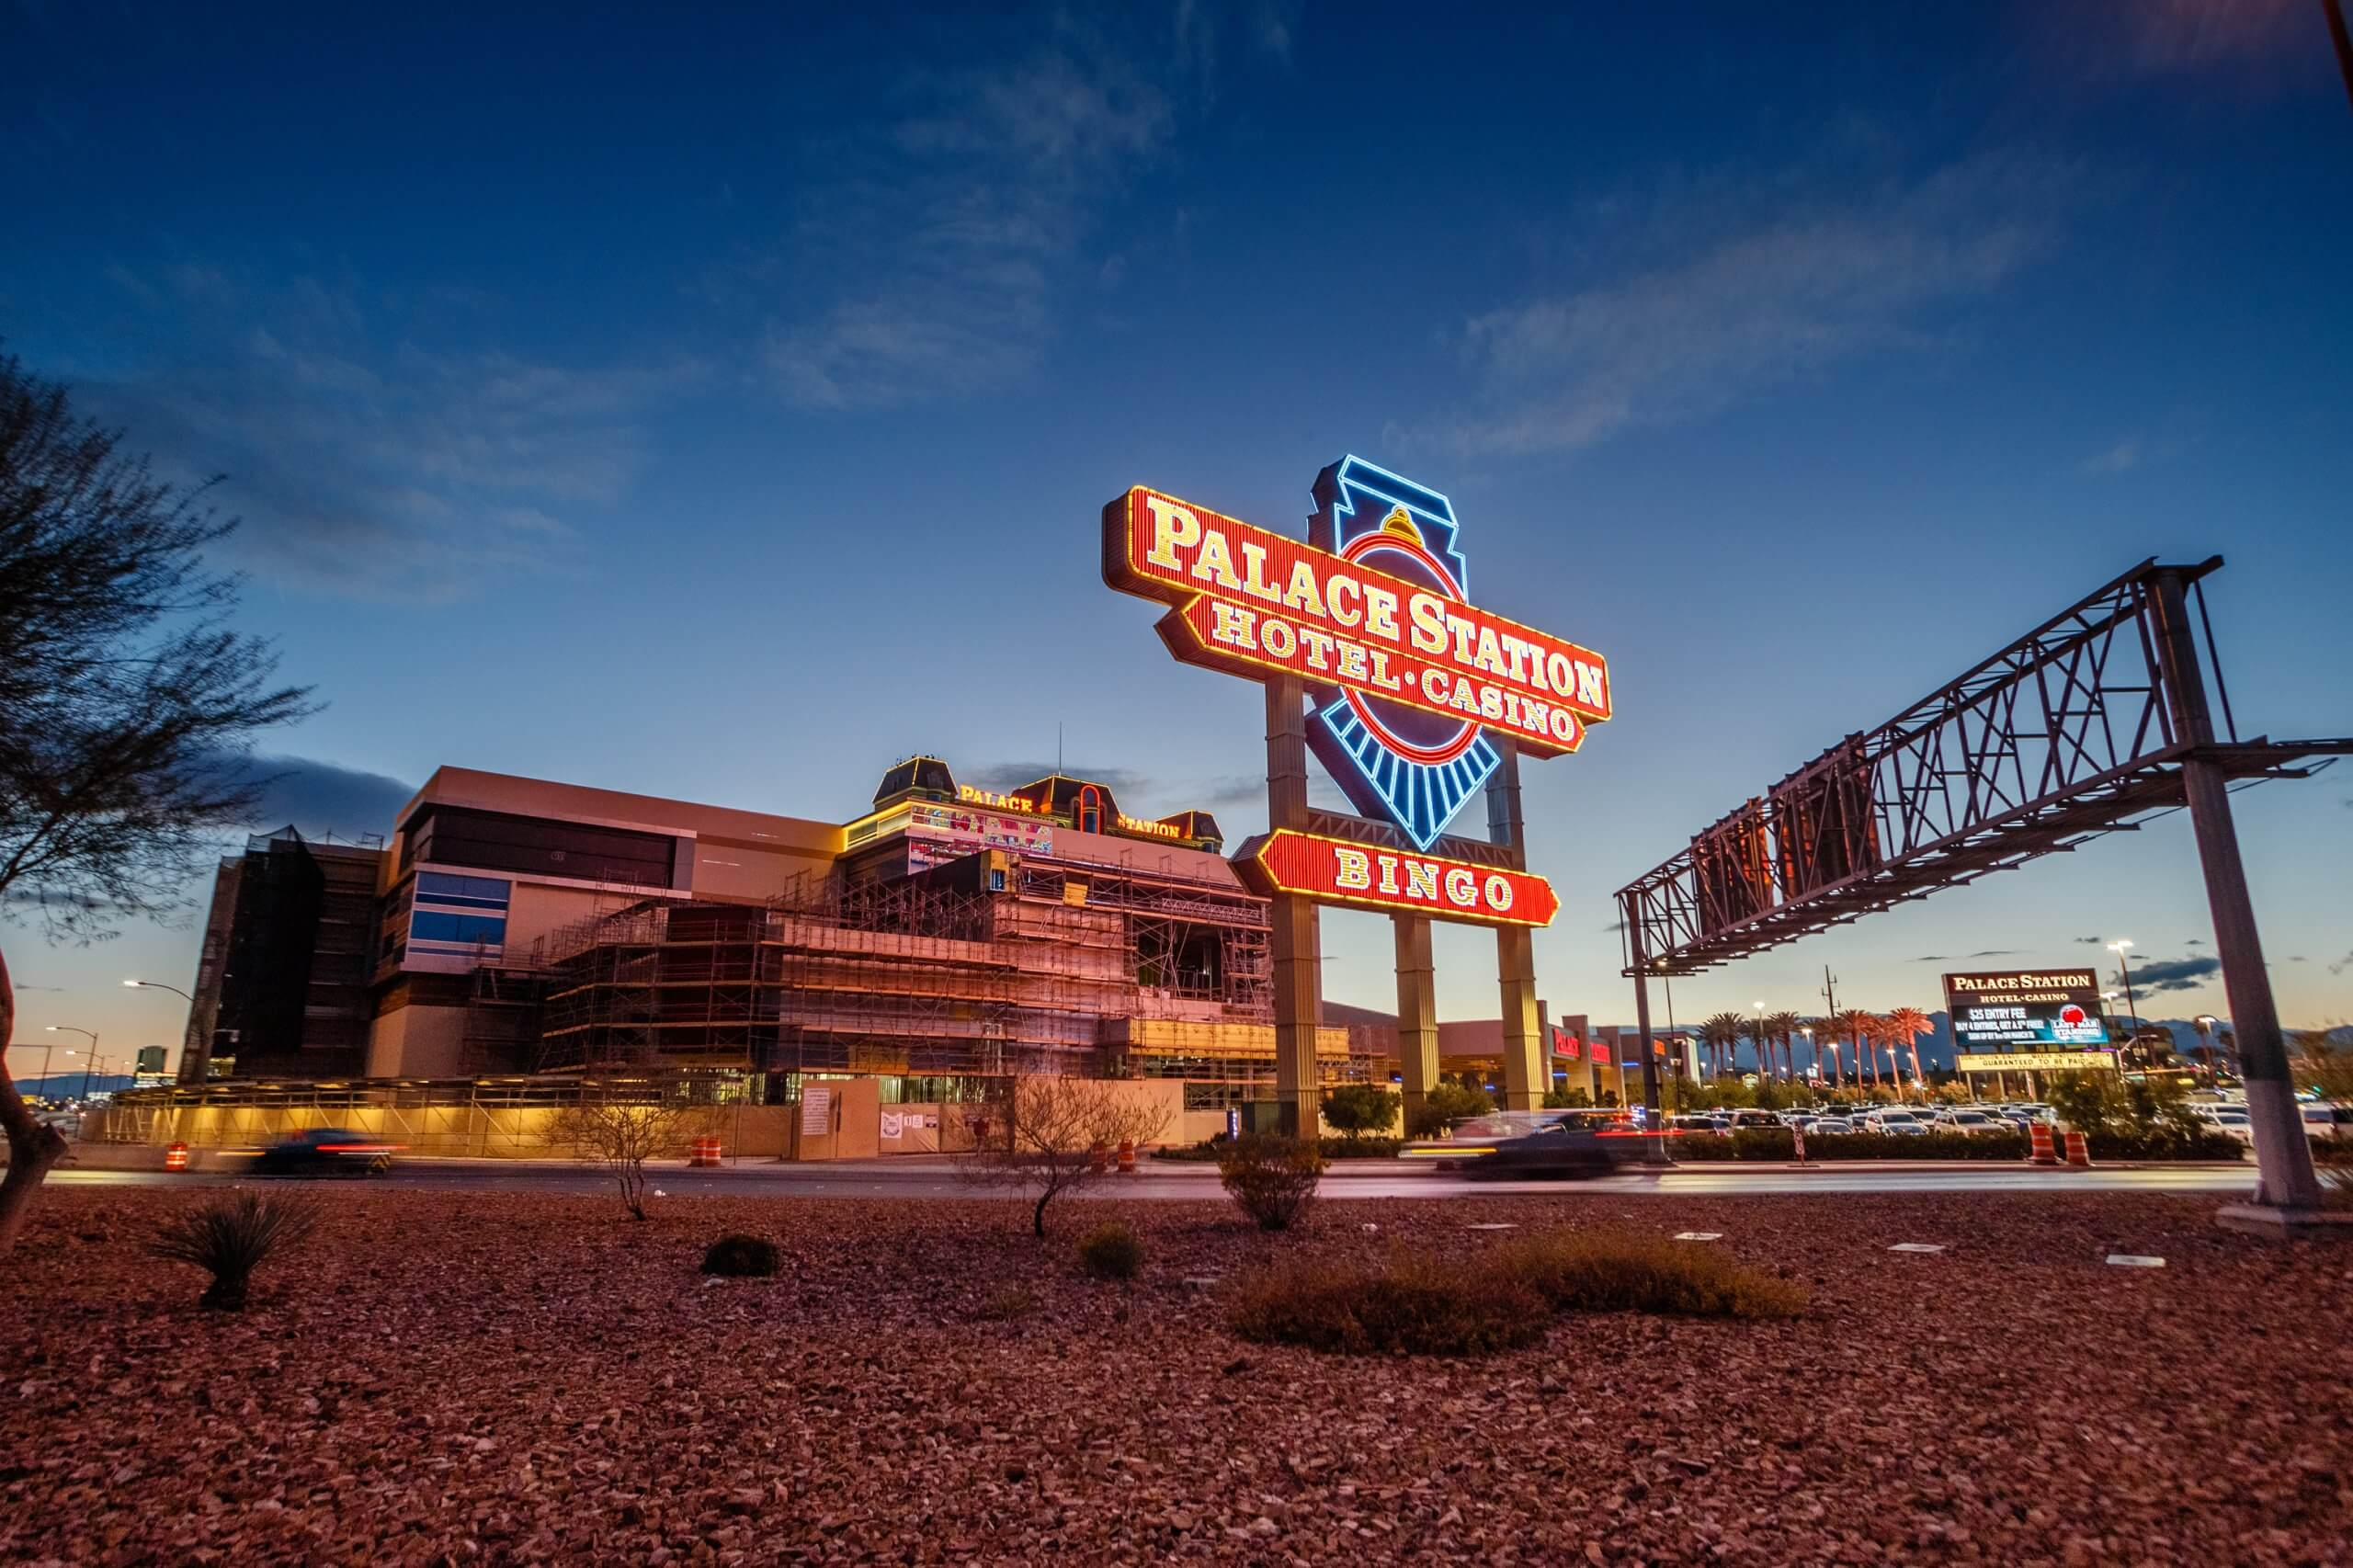 The Palace Station Hotel and Casino